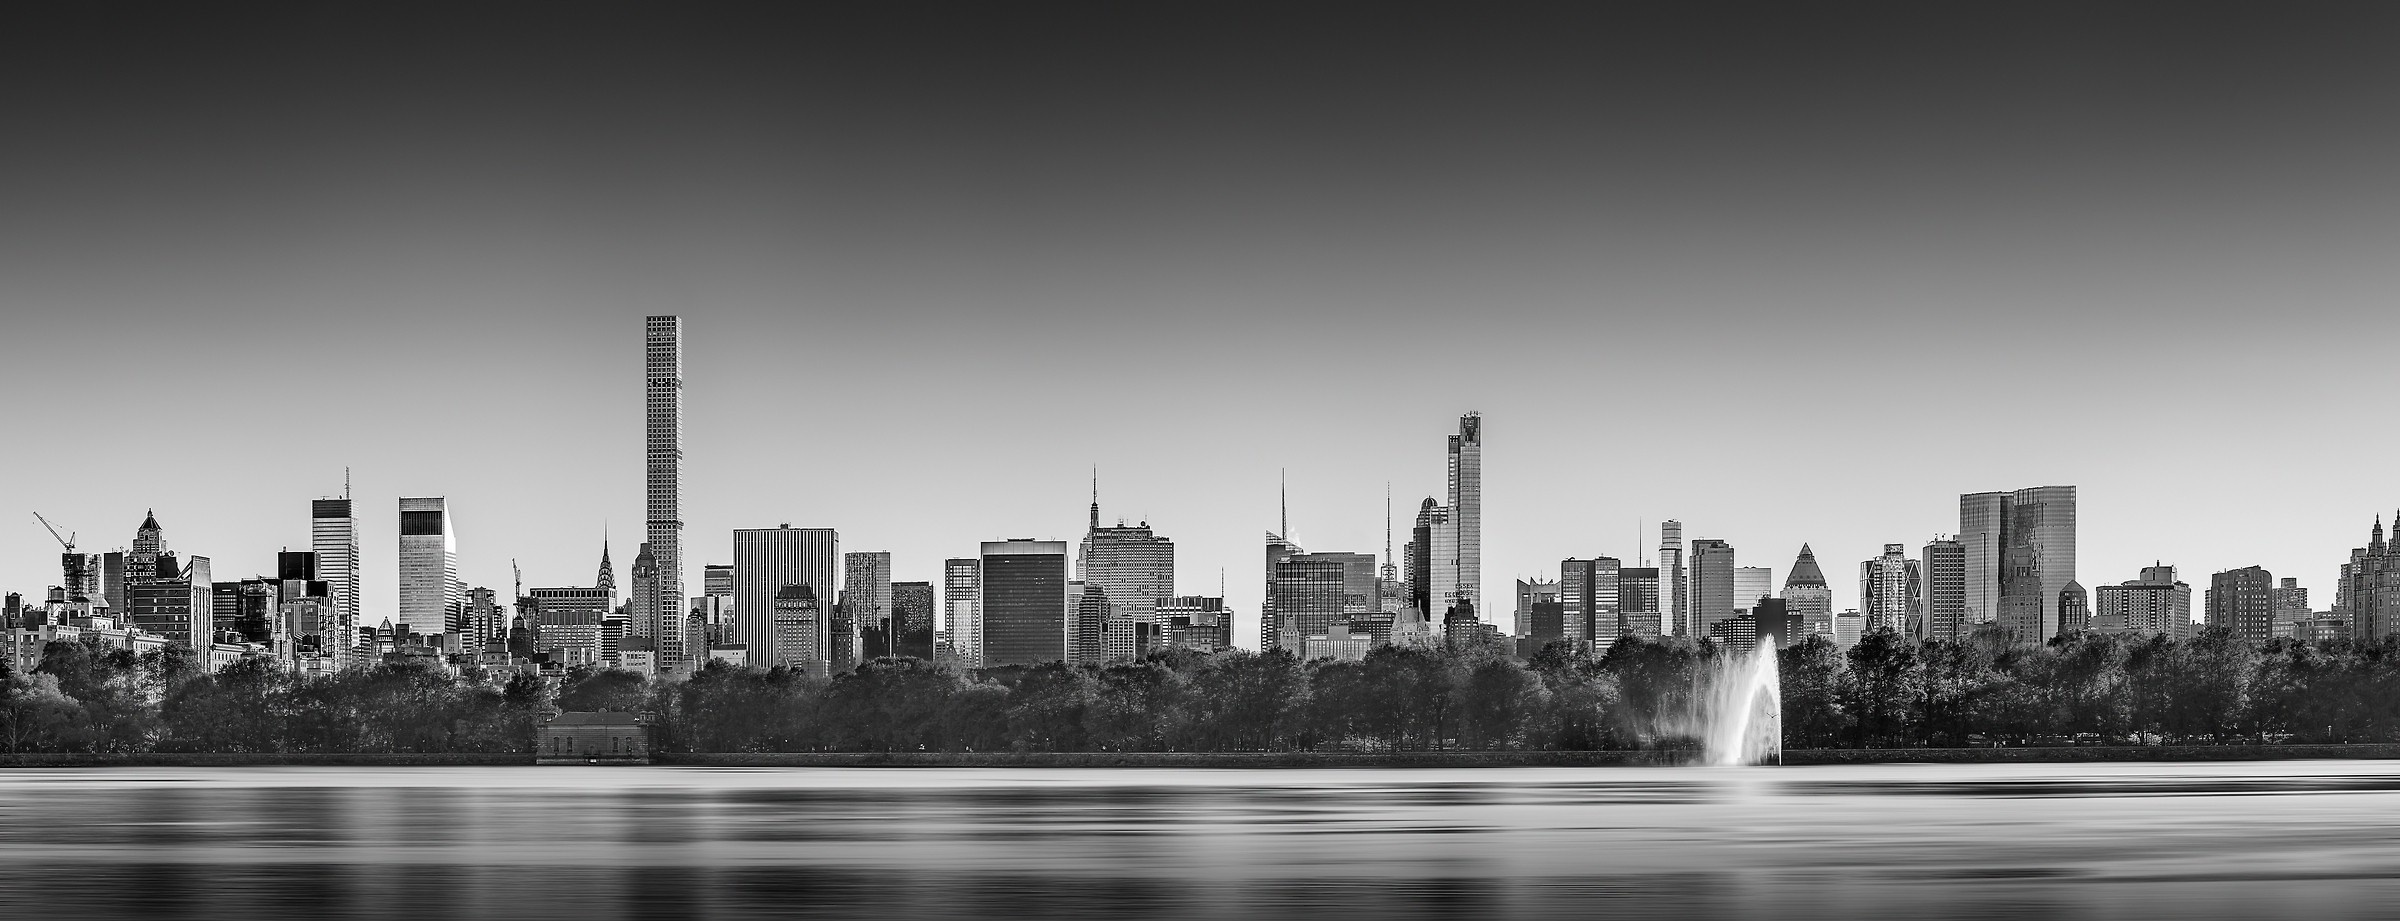 A very high definition cityscape VAST photo of the Midtown Manhattan city skyline in New York City from the reservoir in Central Park; created by Dan Piech